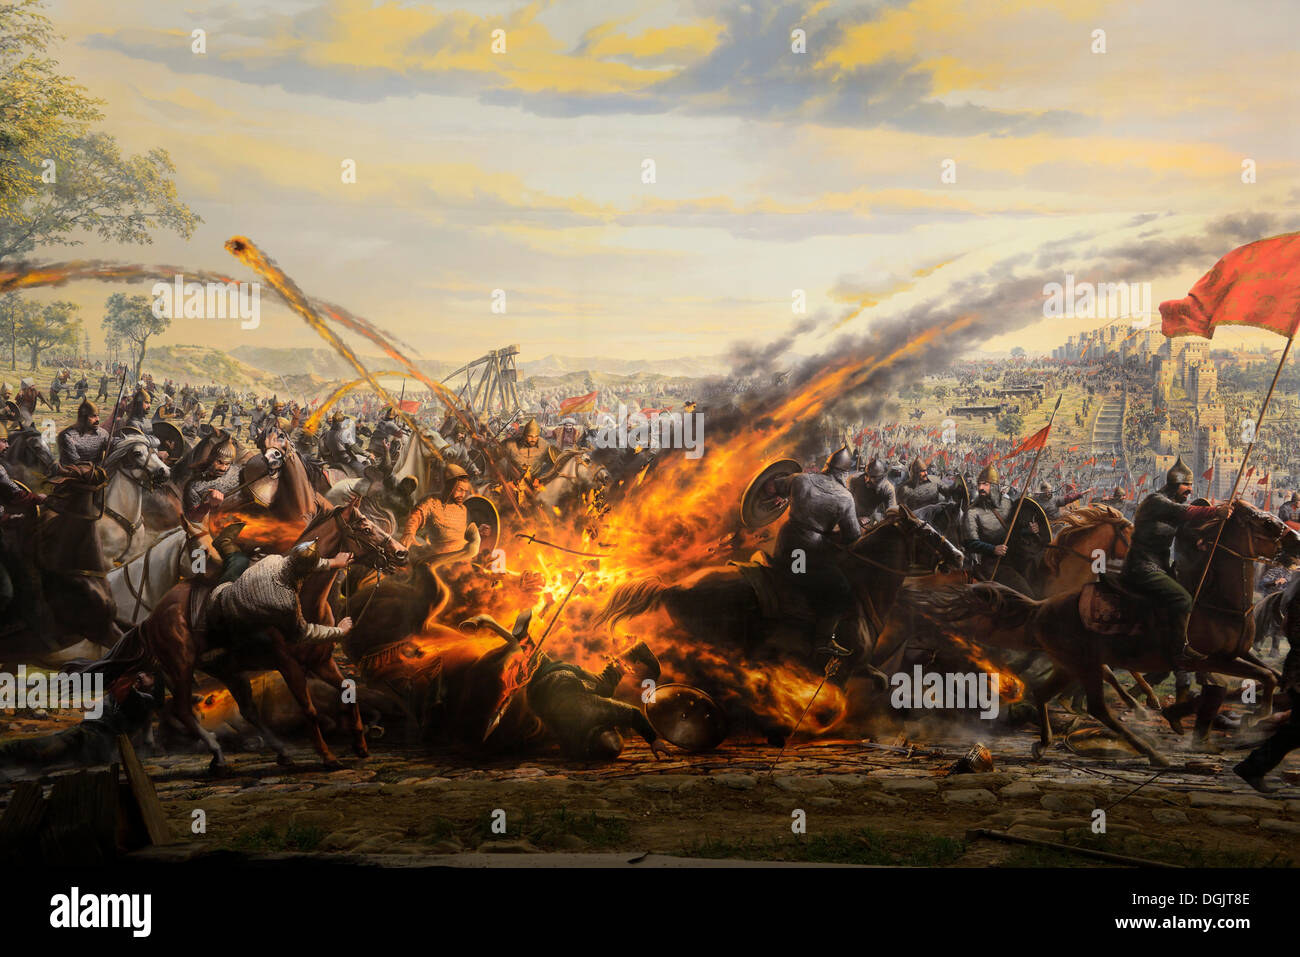 Painting of the conquest of Constantinople by the Ottomans in 1453, in the Panorama 1453 History Museum, Istanbul, European side - Stock Image